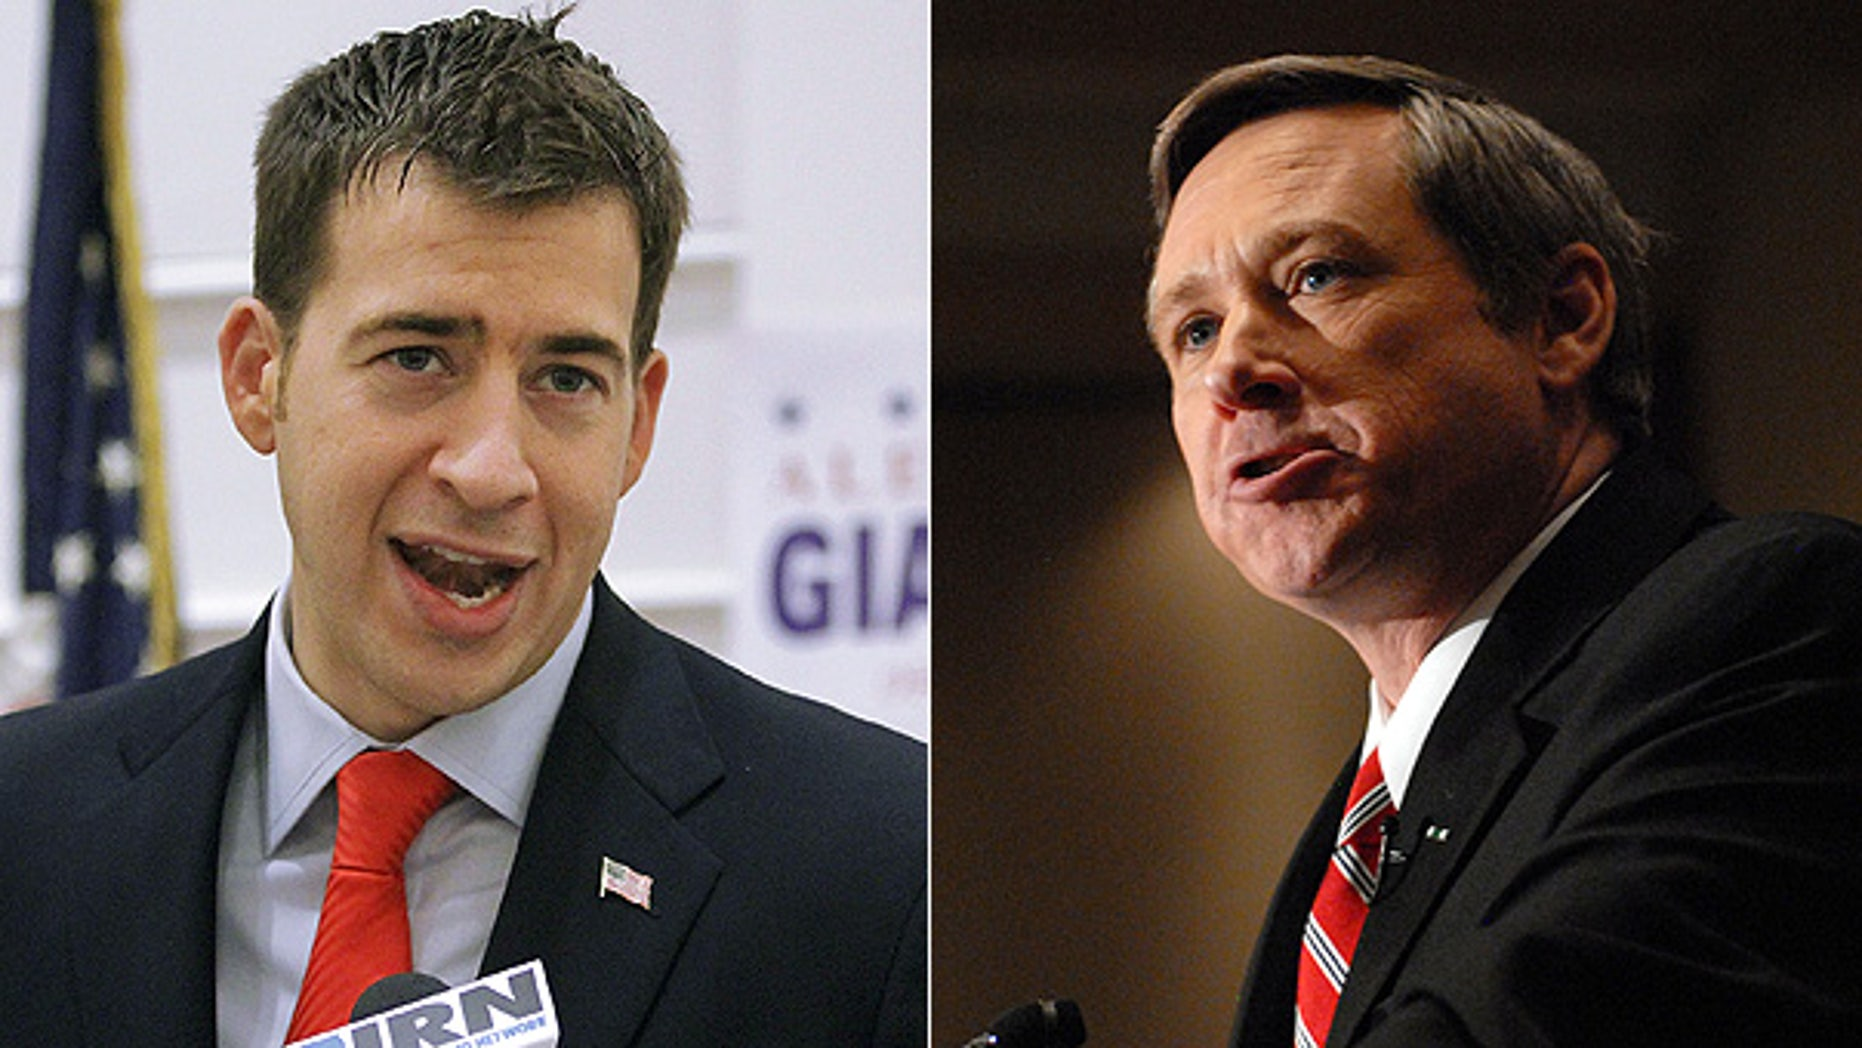 Democrat Alexi Giannoulias, left, and Republican Mark Kirk are running for the U.S. Senate seat once held by President Obama.